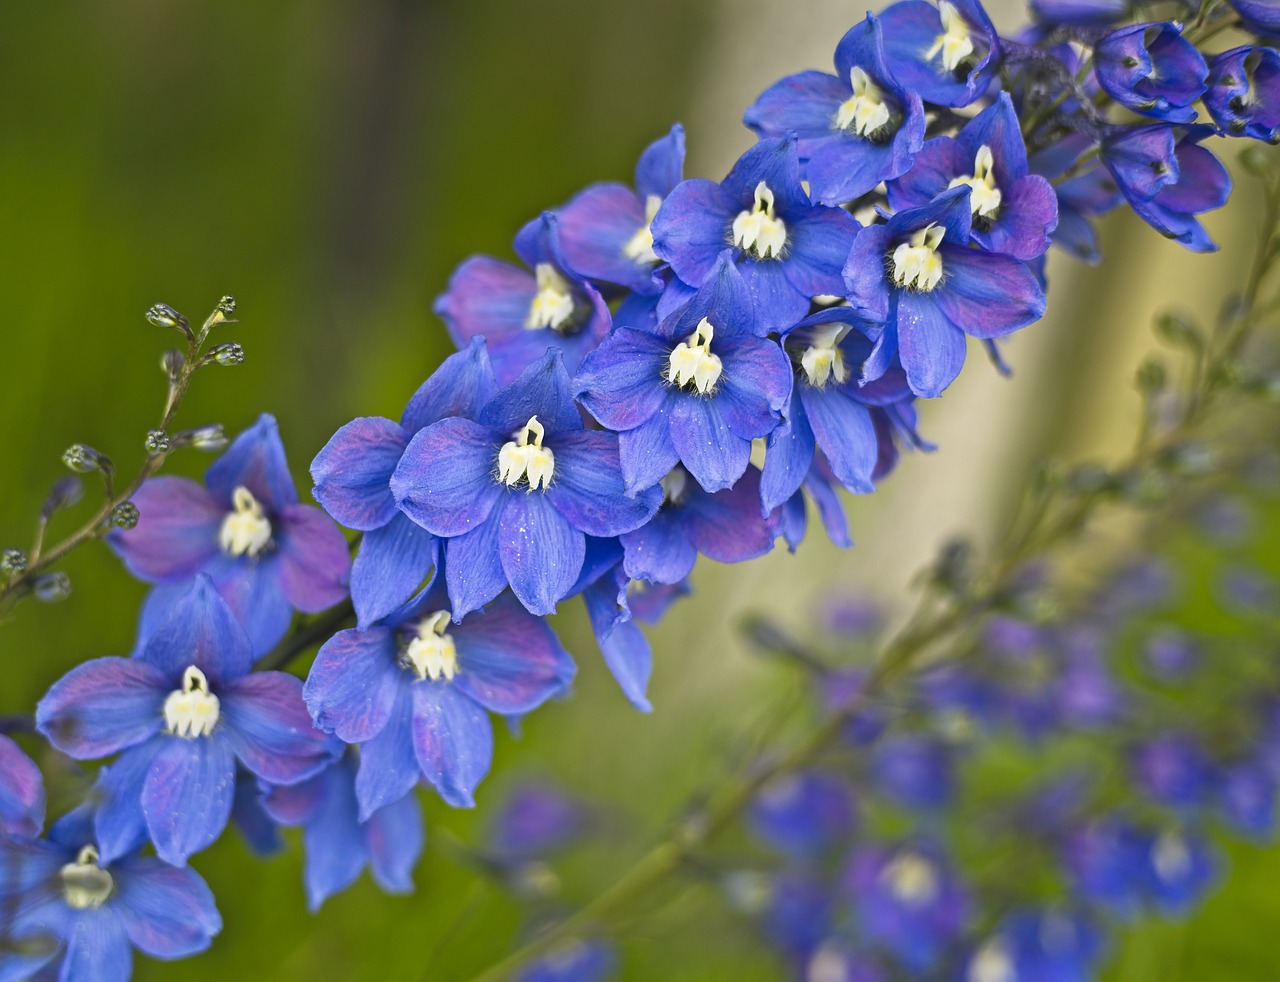 How to Care for Delphinium